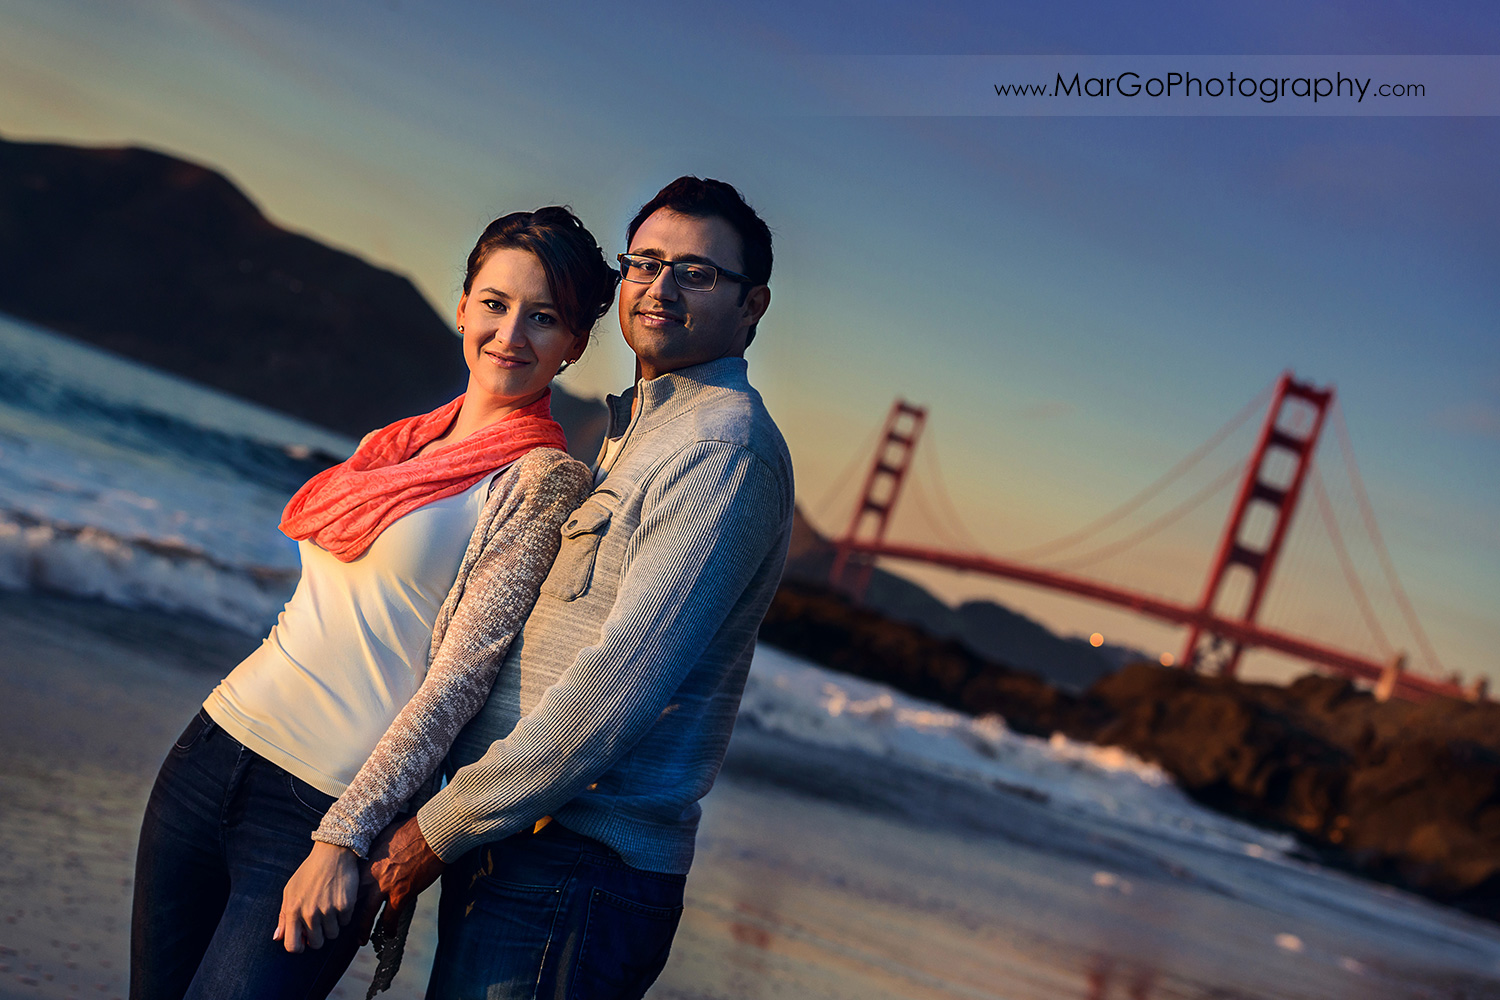 3/4 portrait of man and woman in grey sweater and jeans sitting on the sand with Golden Gate Bridge in background during engagement session at San Francisco Baker Beach